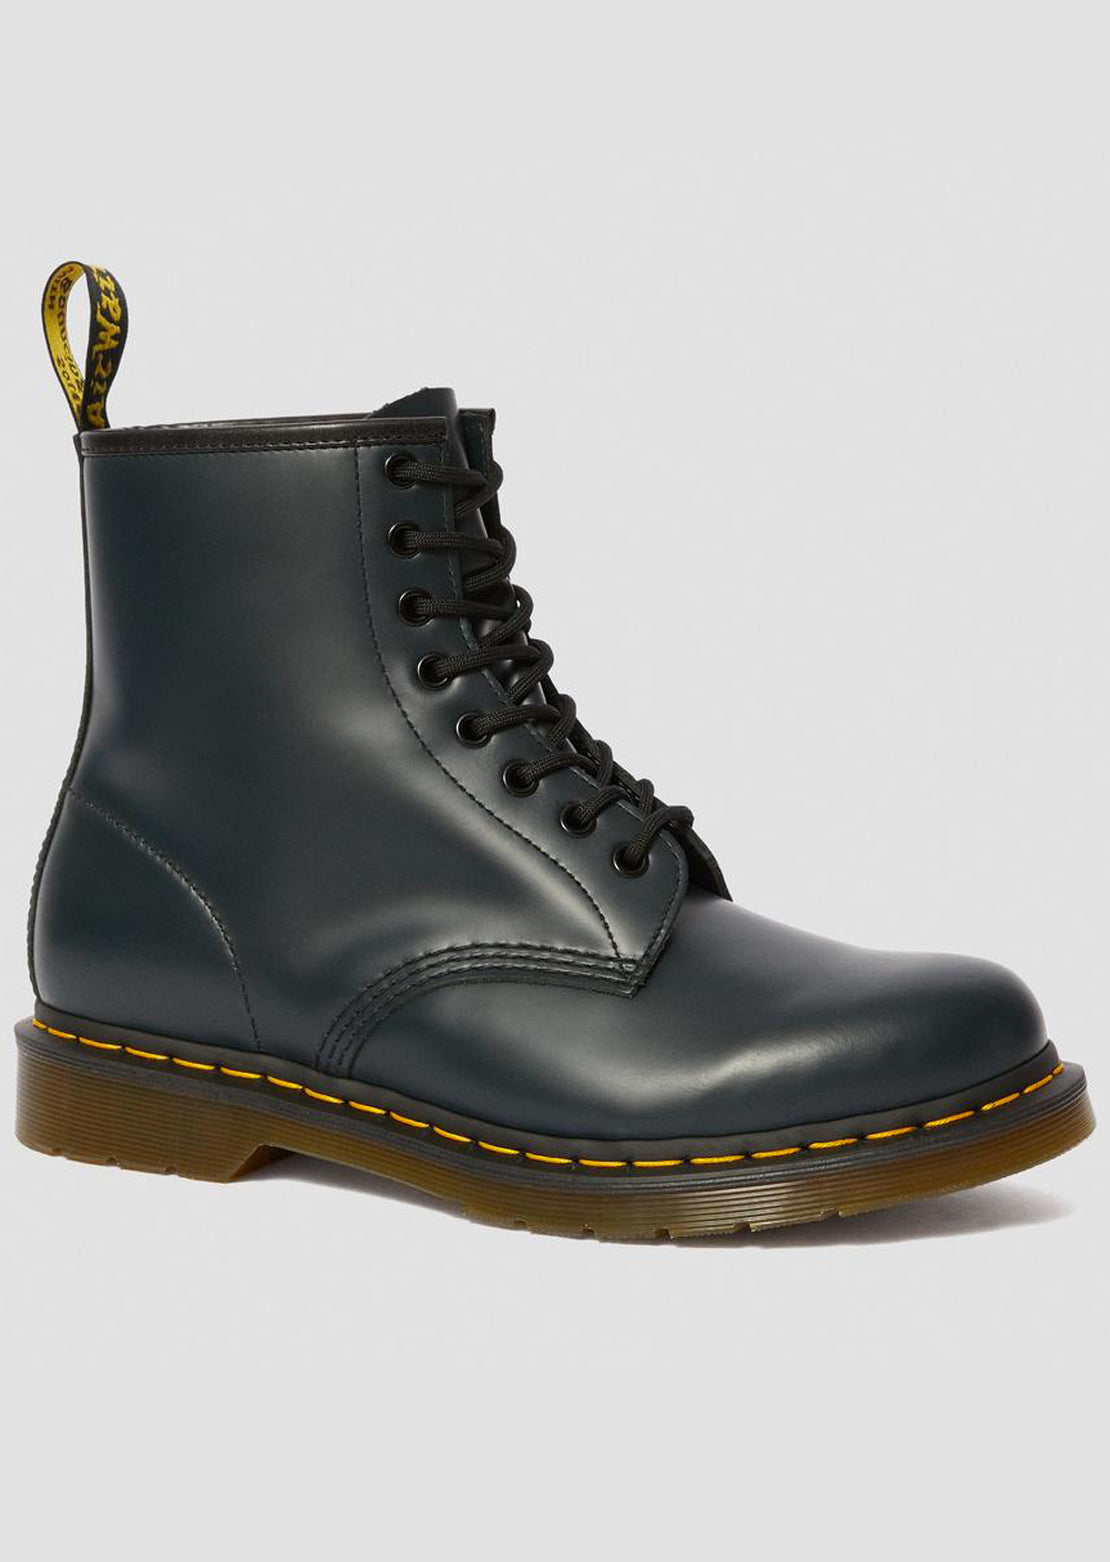 Dr.Martens Men's 1460 Smooth Leather Boots